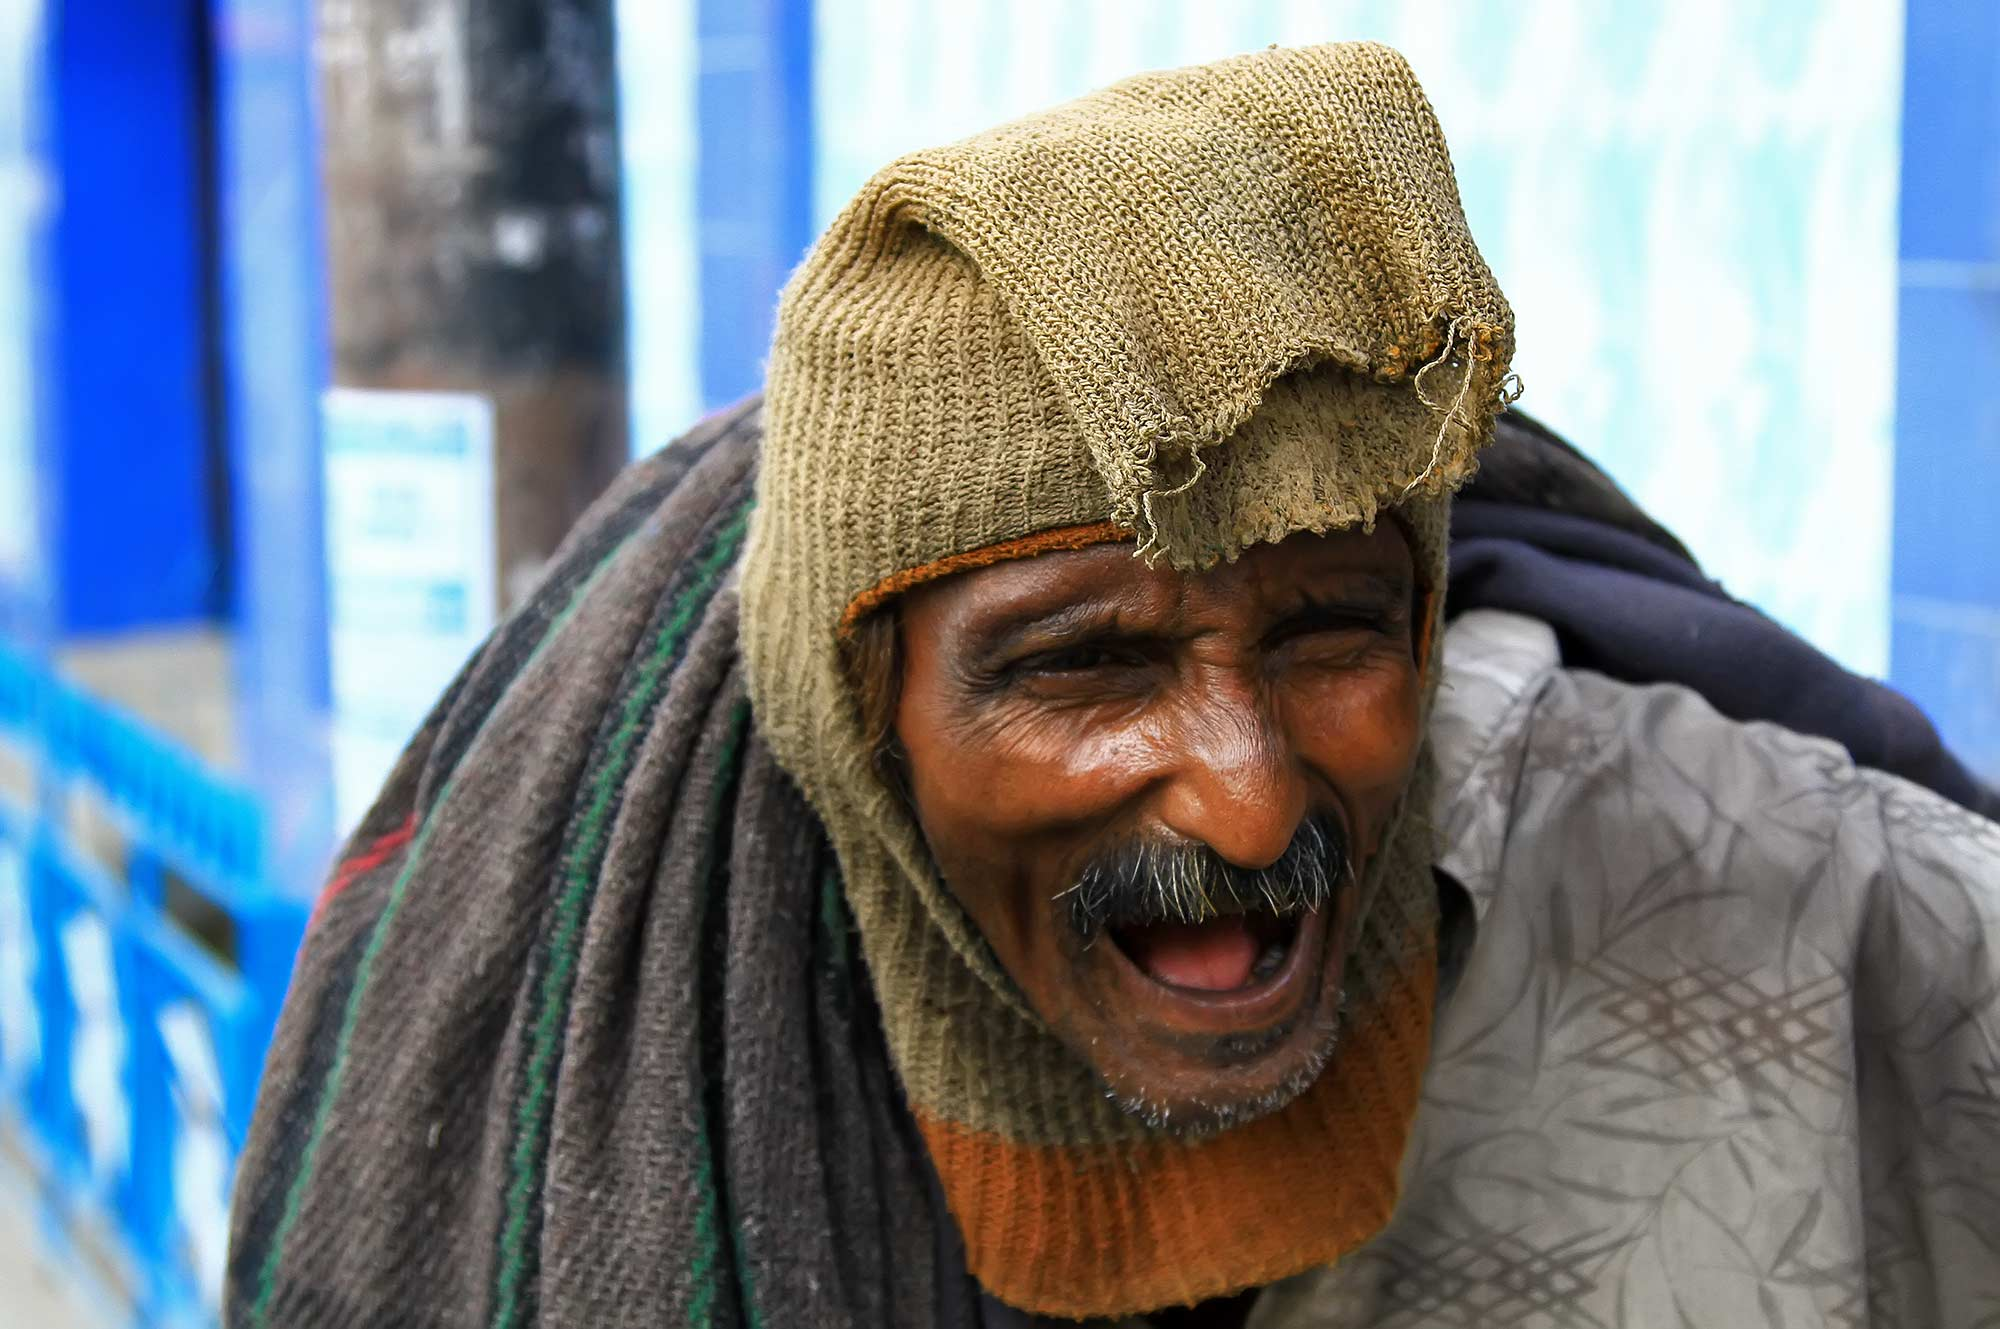 portrait-homeless-man-kolkata-india